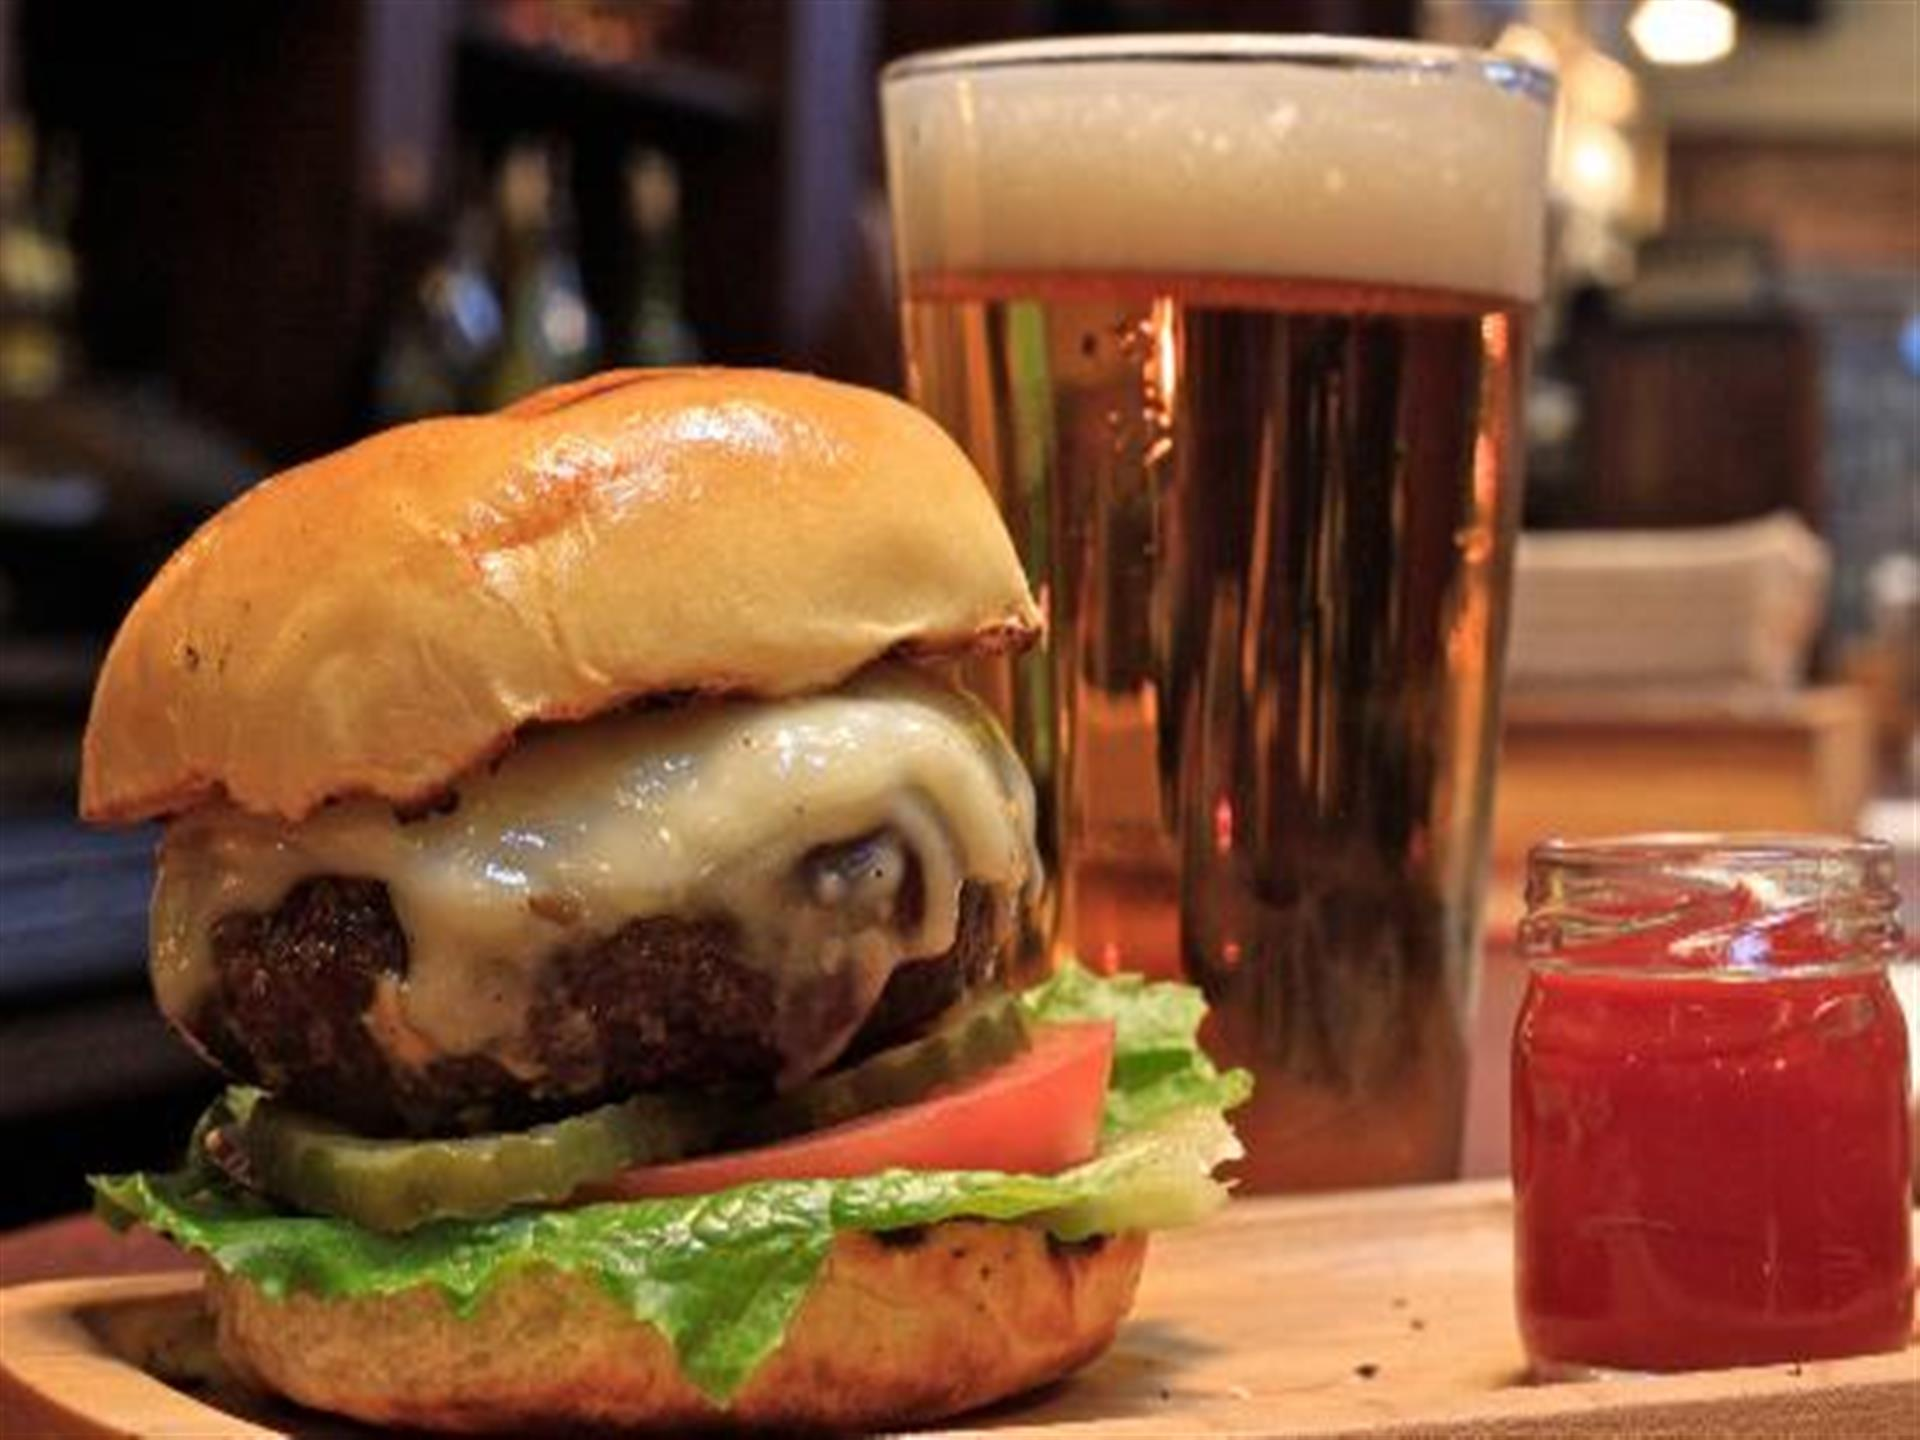 Thick burger with cheese, lettuce, pickle, tomato on bun with side of ketchup and full beer glass